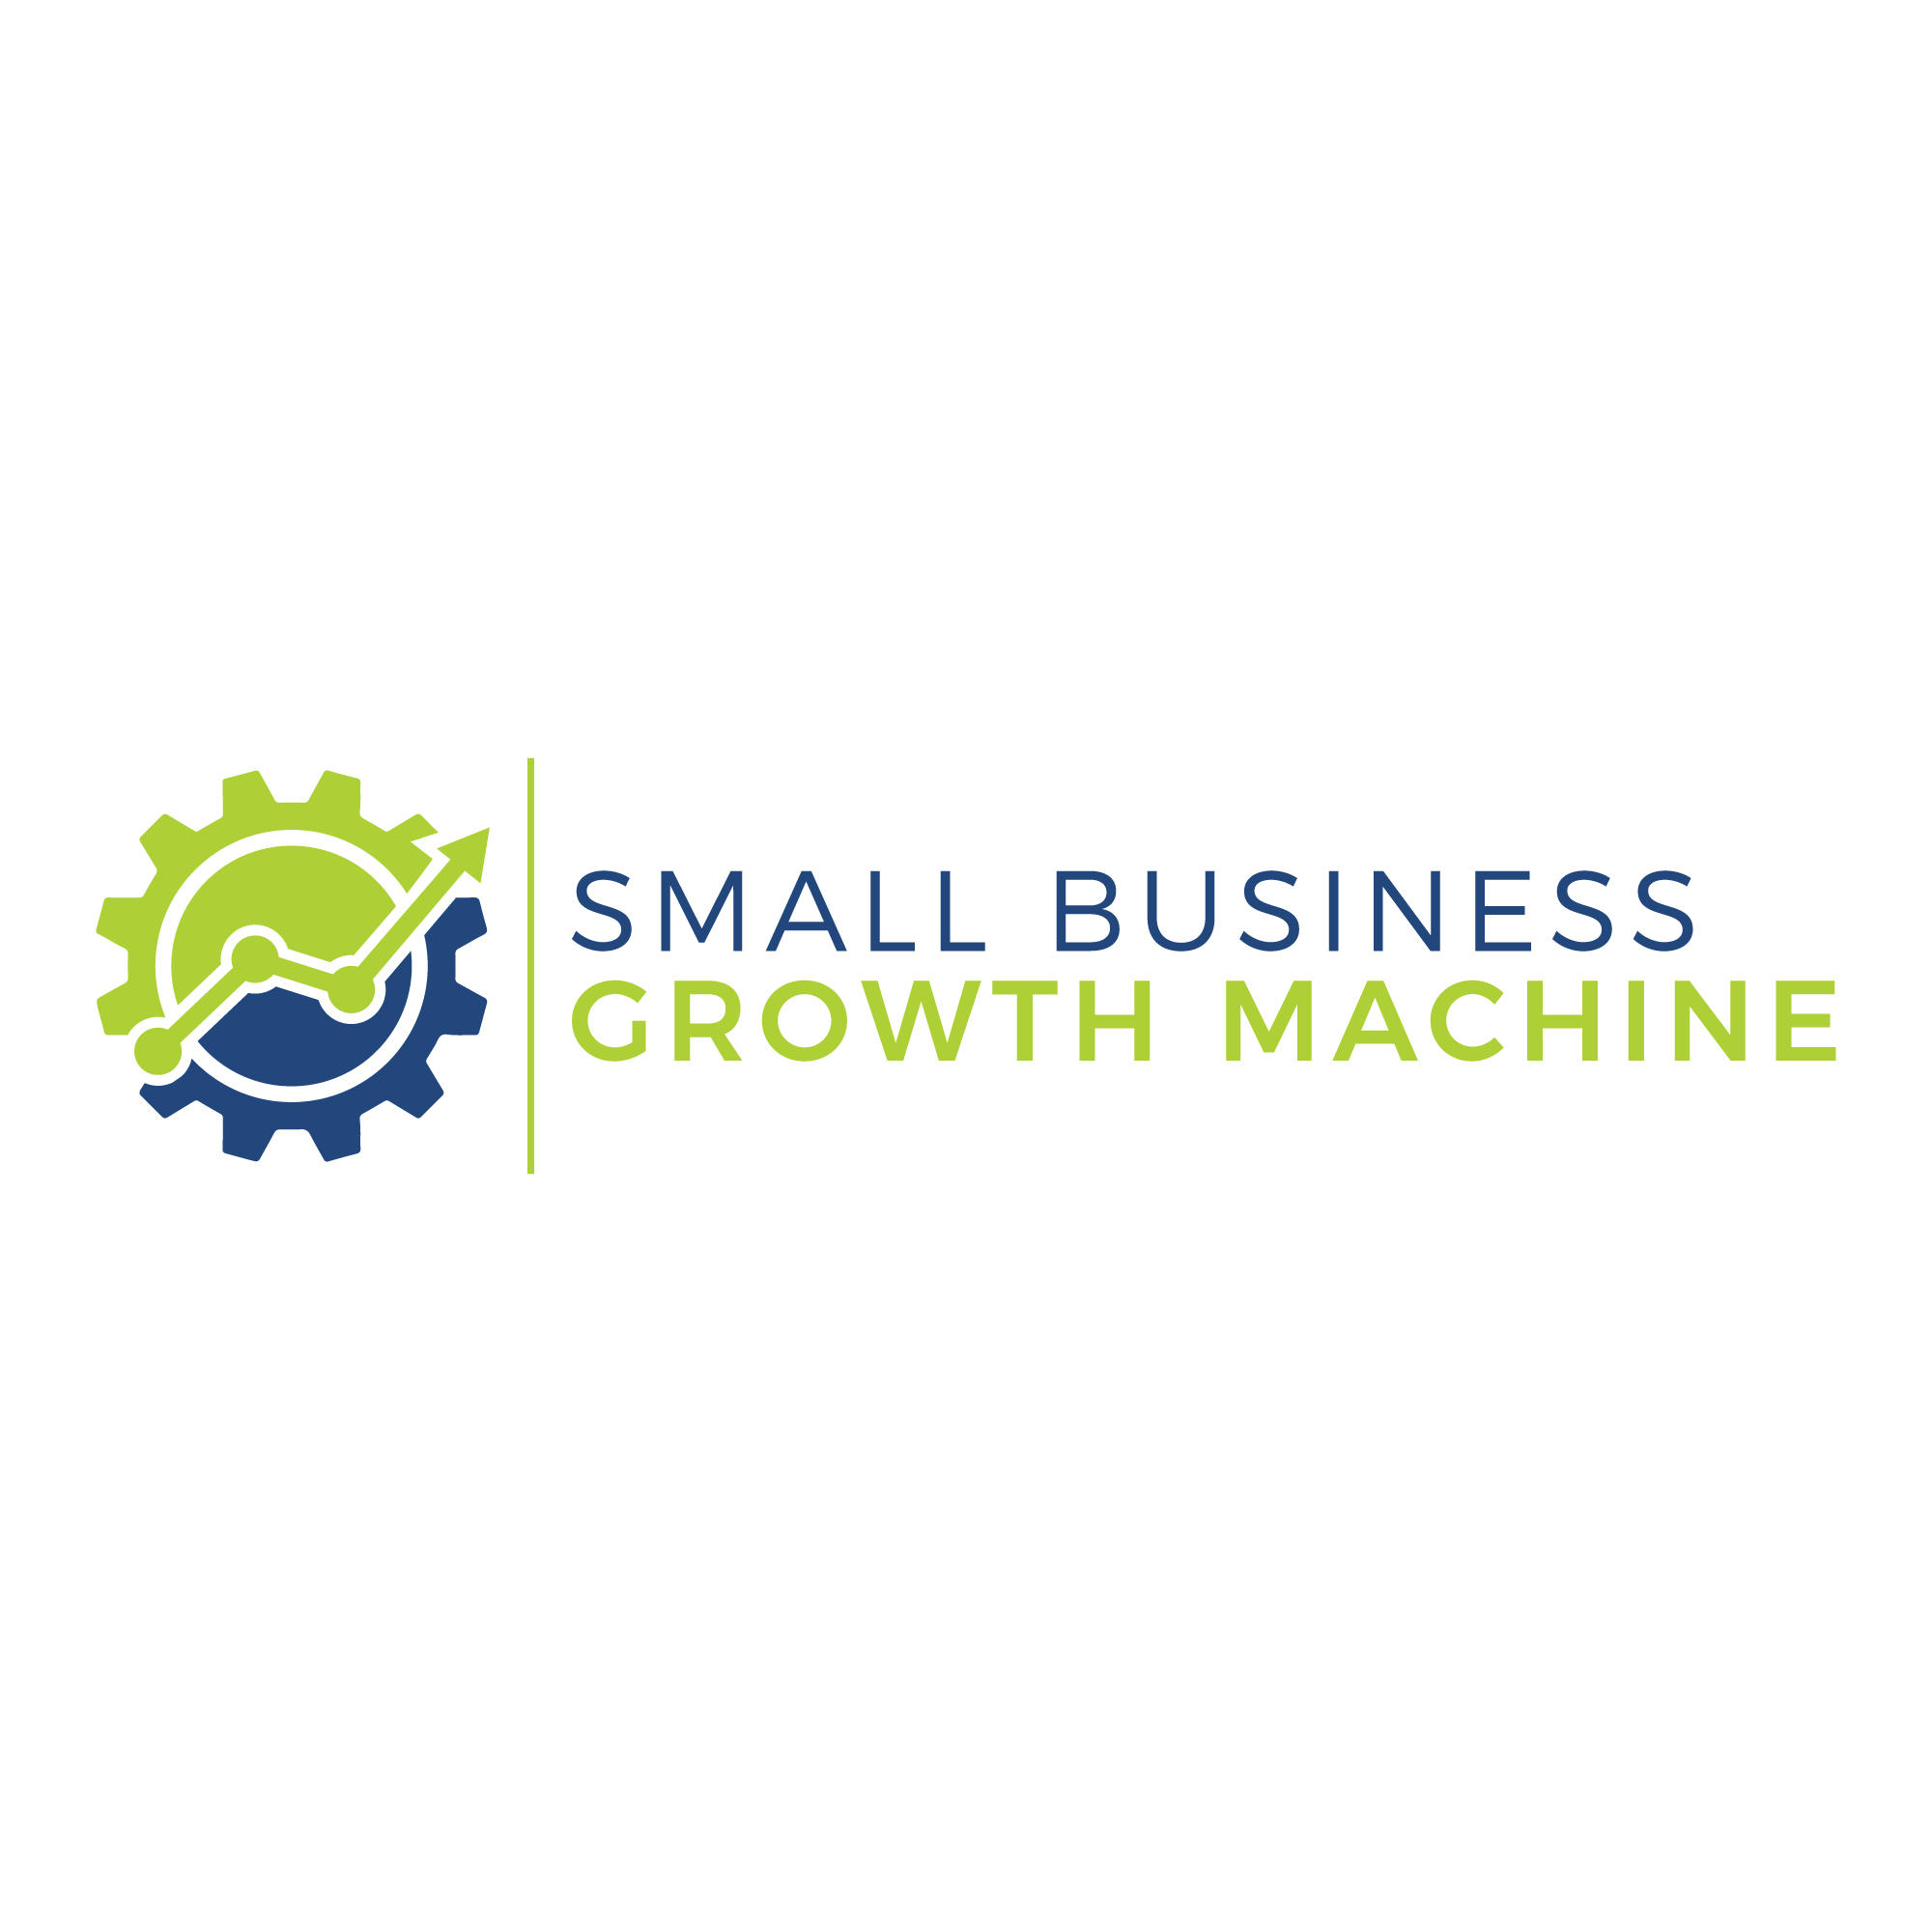 Small Business Growth Machine - Fort Lauderdale, FL 33301 - (954)541-9476   ShowMeLocal.com